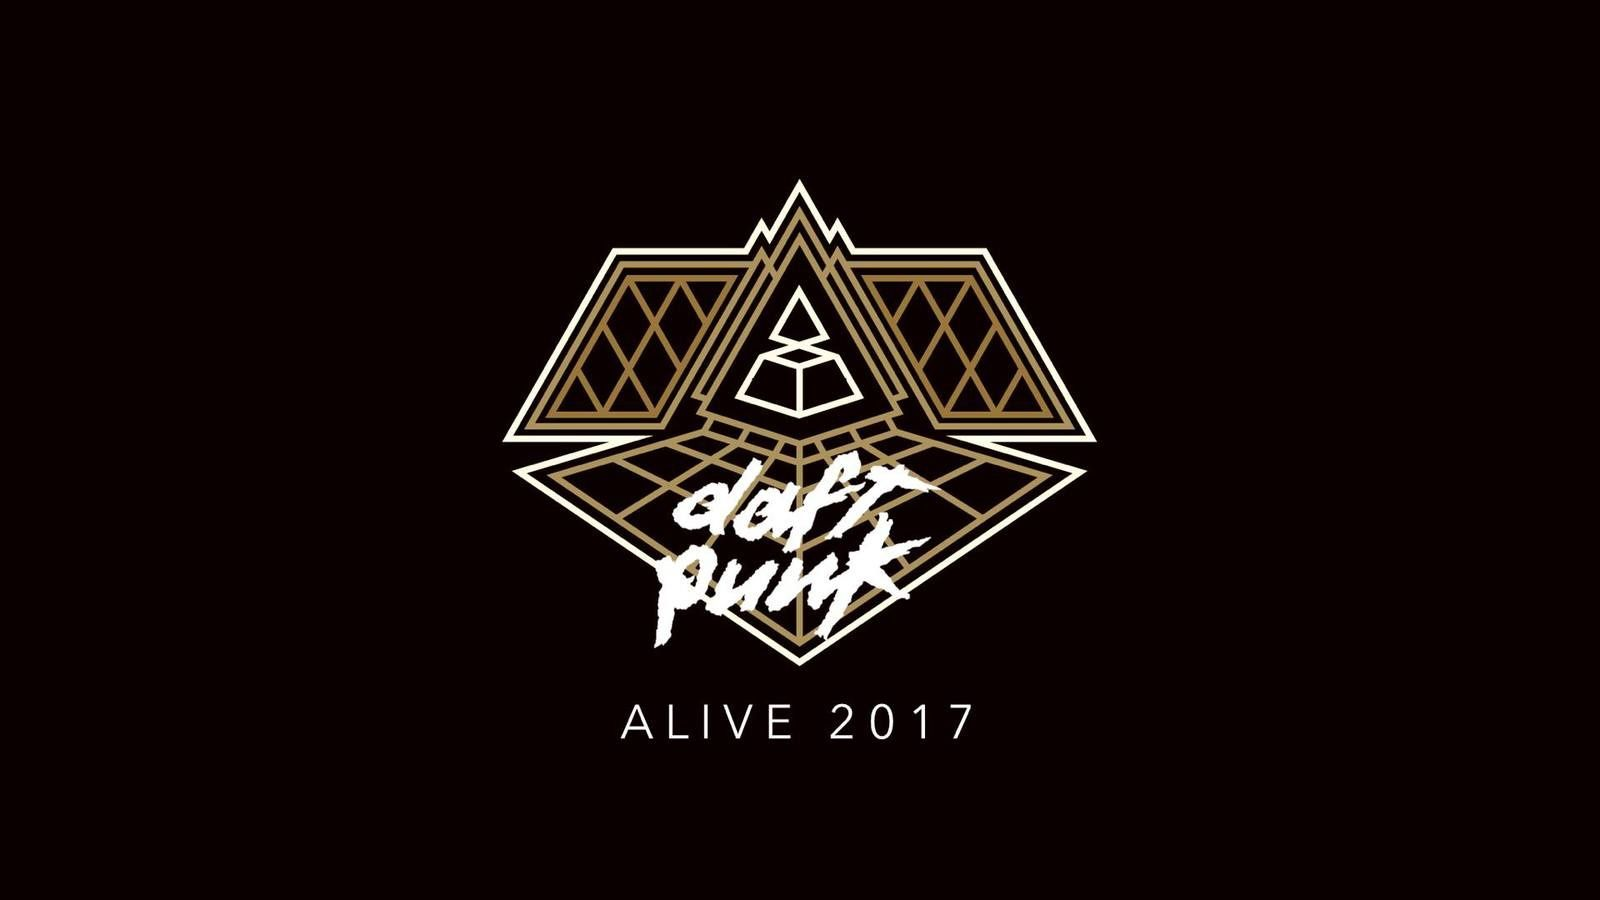 &quot&#x3B;well-sourced information&quot&#x3B; says that Daft Punk are headlining Glastonbury 2017